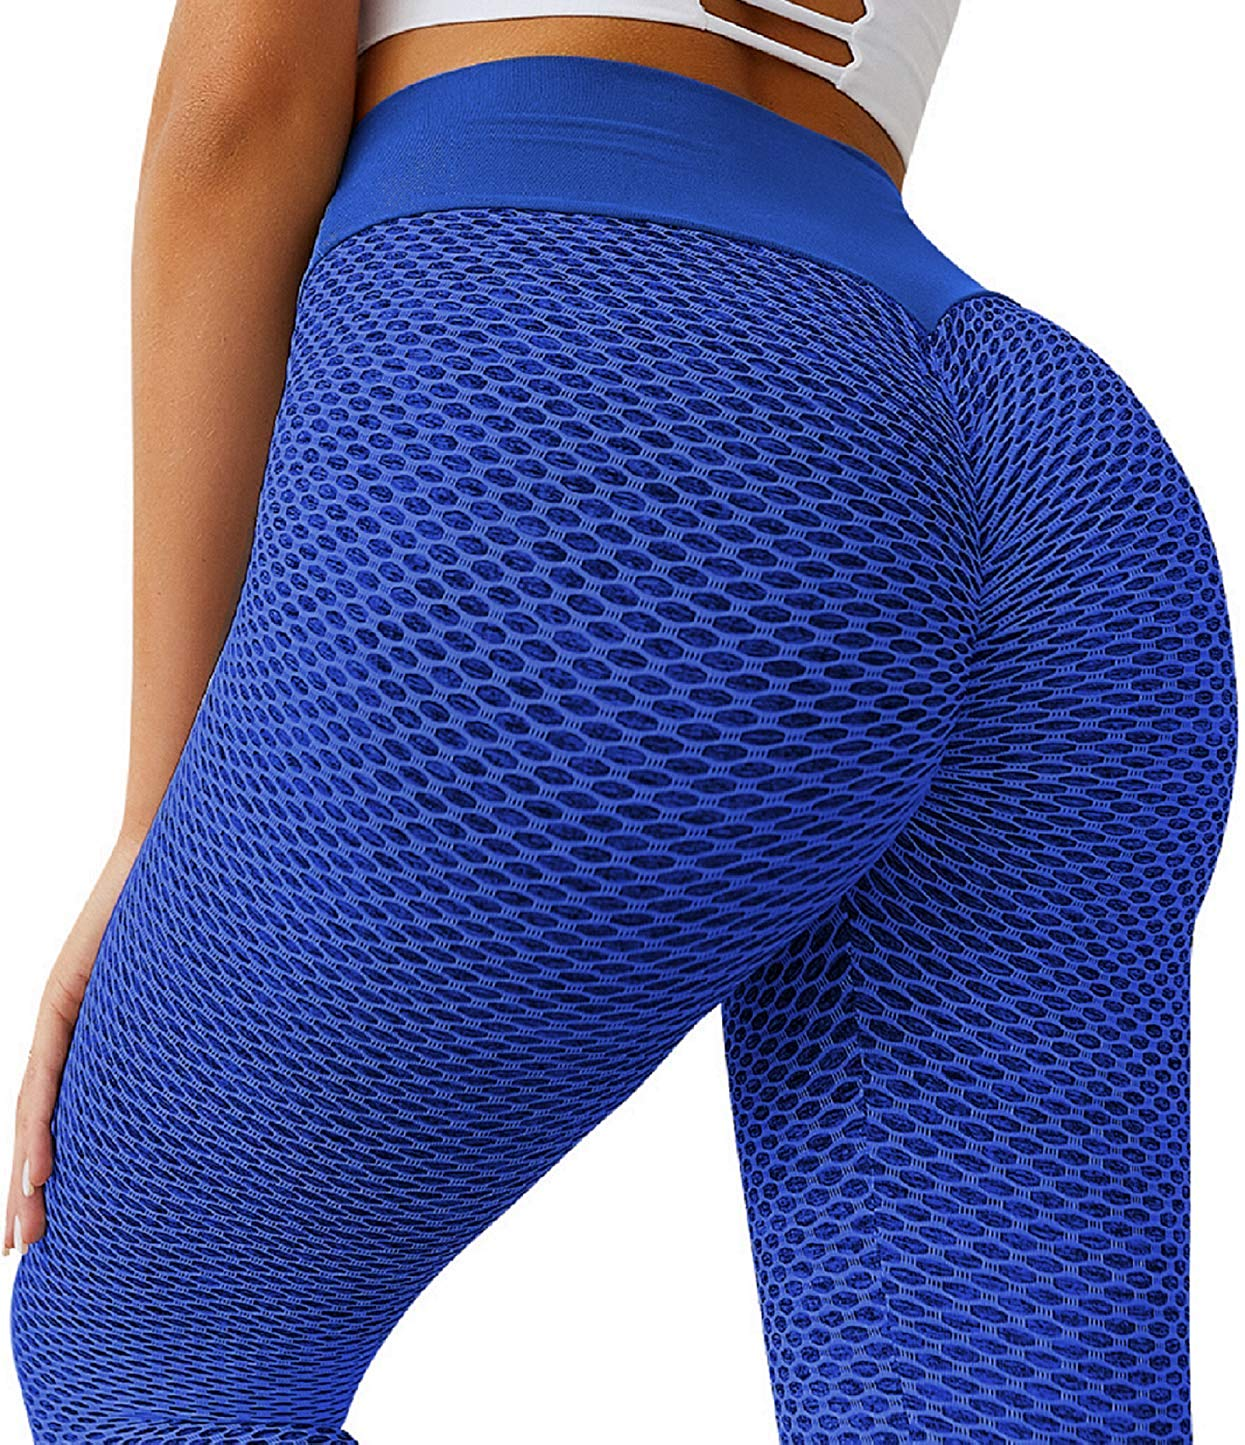 Sexy Mesh Fitness Leggings - Sports Accessories Collectors - Shinymod